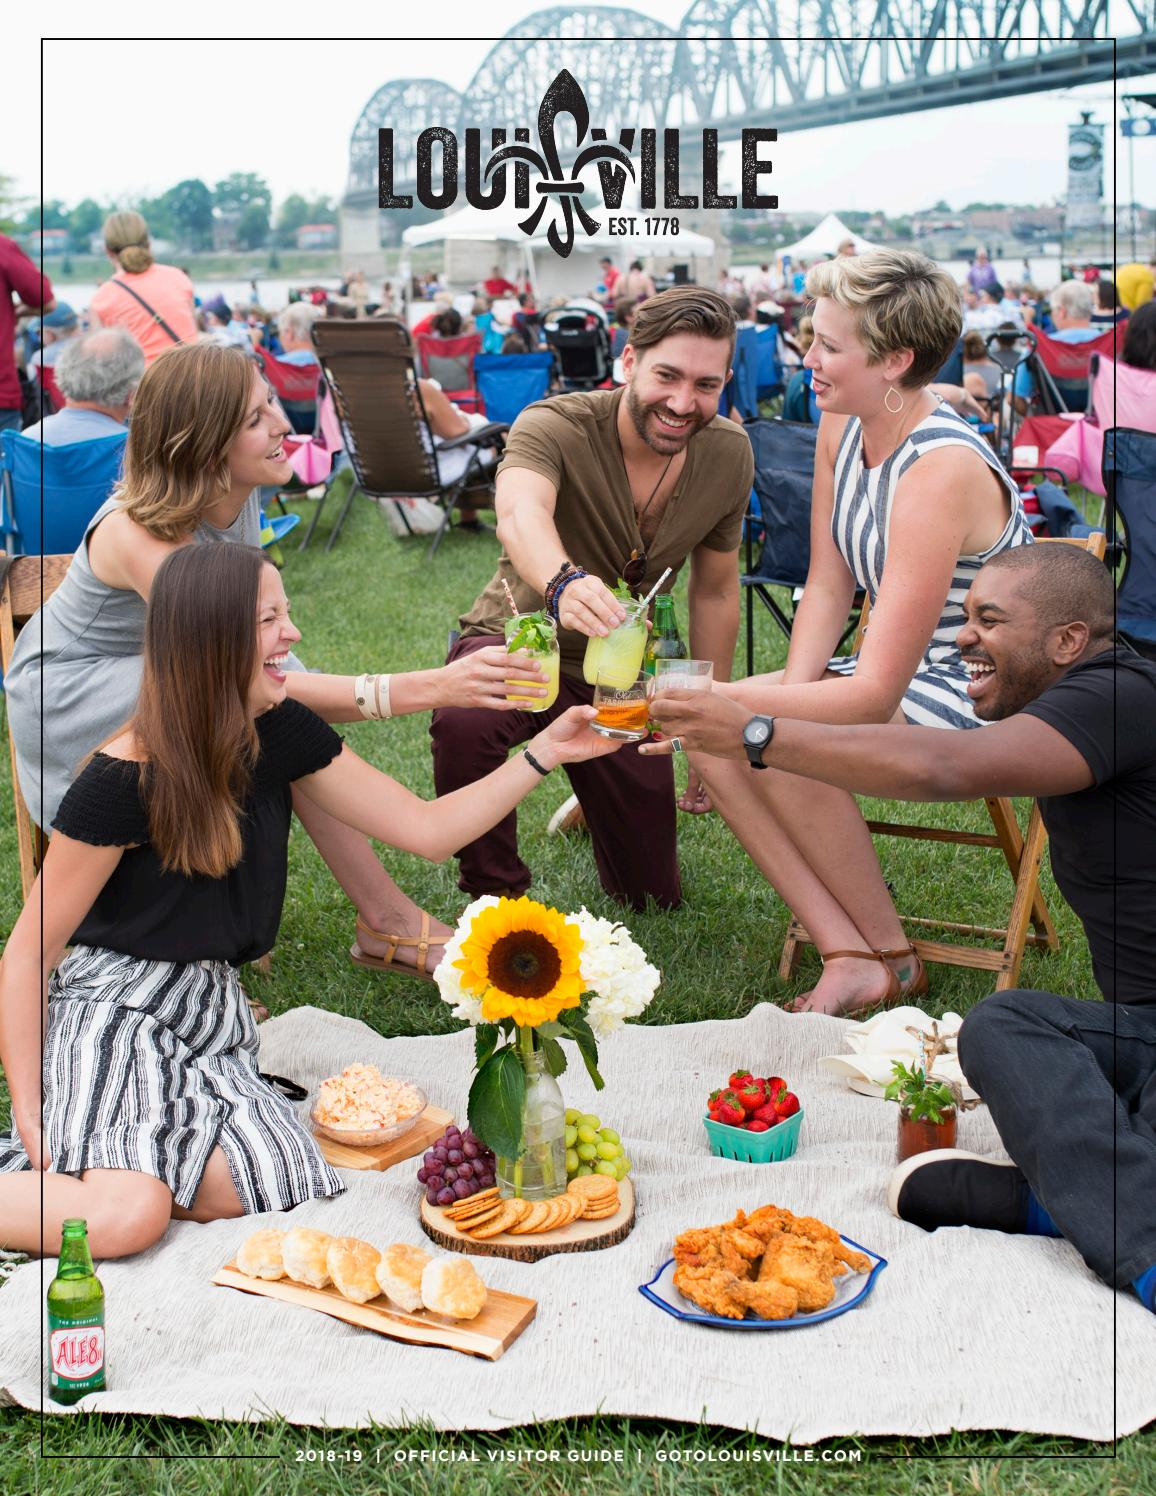 Entertainment Calendar The Pub Spanish Springs Lady Lake Fl February 2020 2018 Louisville Visitor Guide by Louisville Convention & Visitors